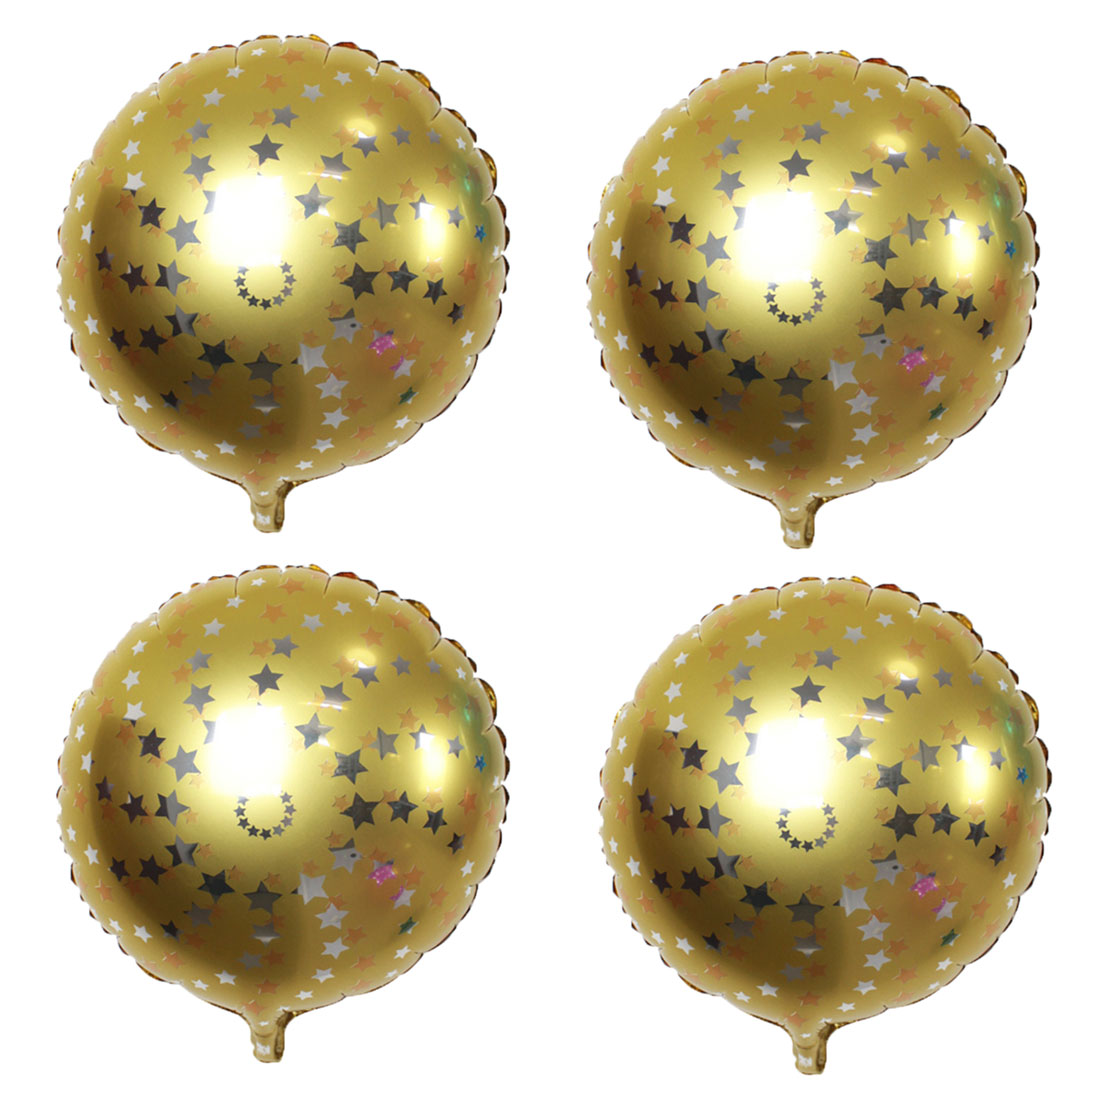 Home Birthday Wedding Foil Star Pattern Round Inflation Balloon Gold Tone 18 Inches 4pcs